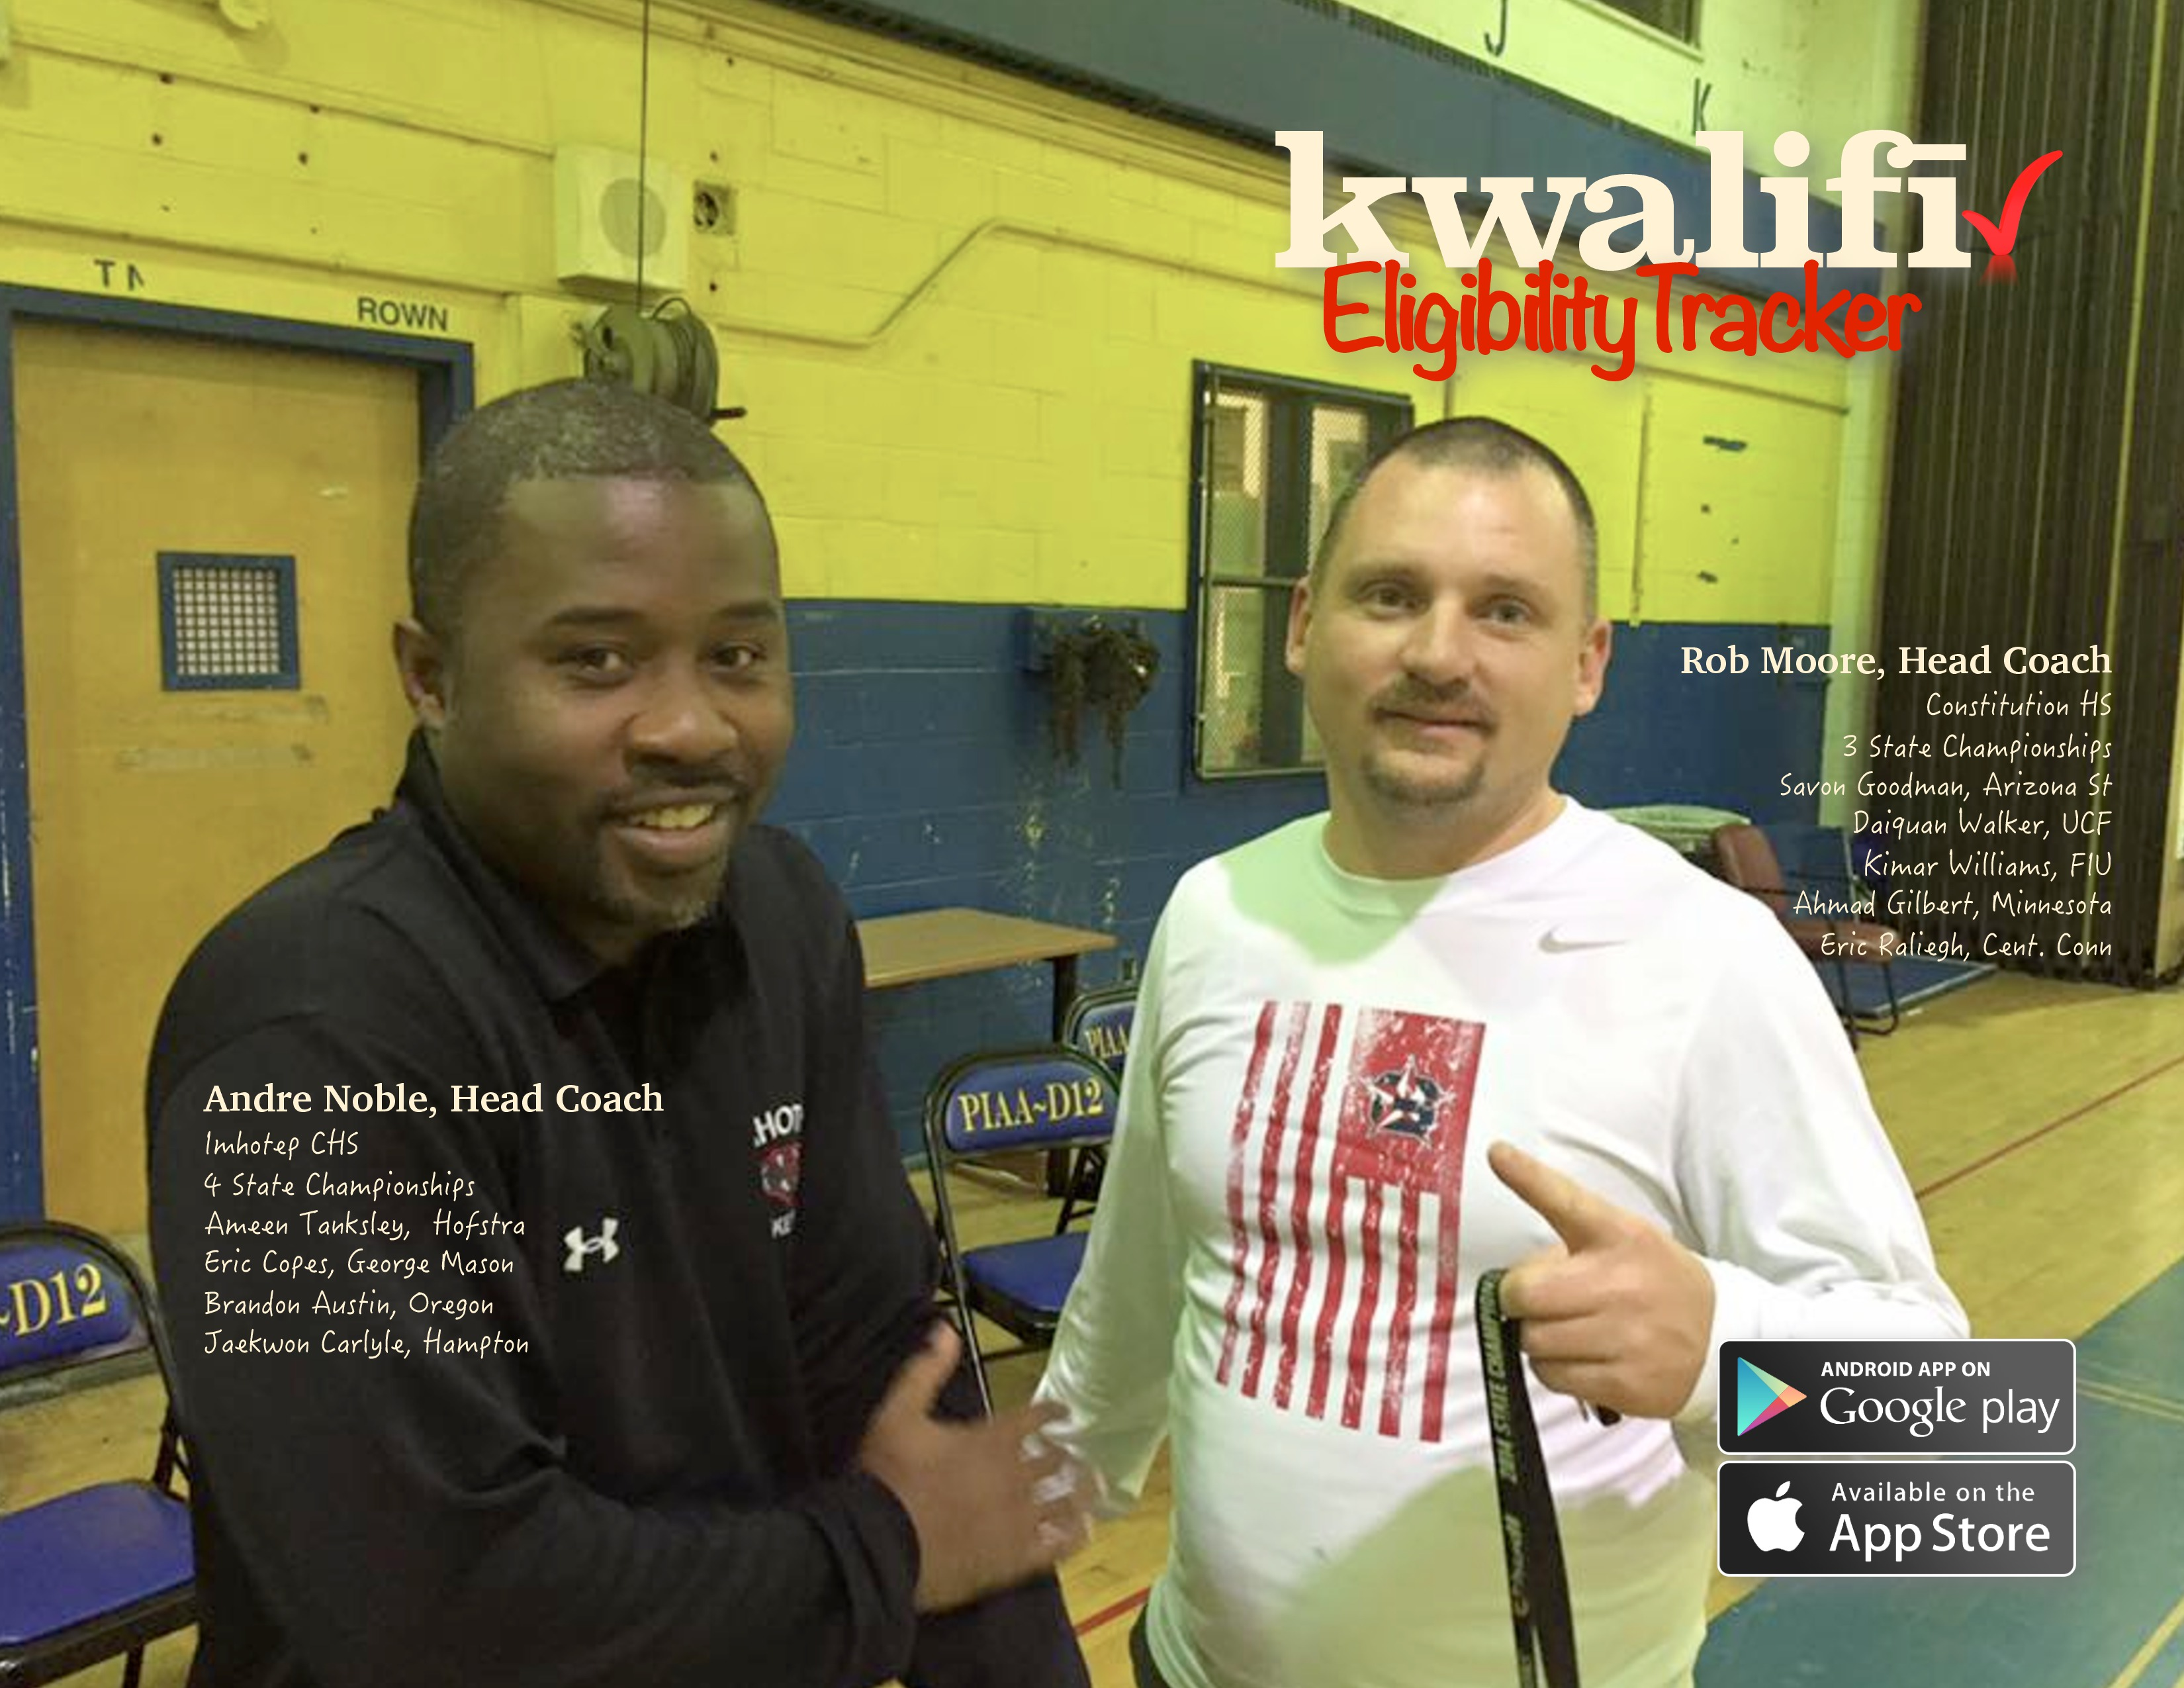 Andre Noble and Rob Moore - kwalifi poster-page-0